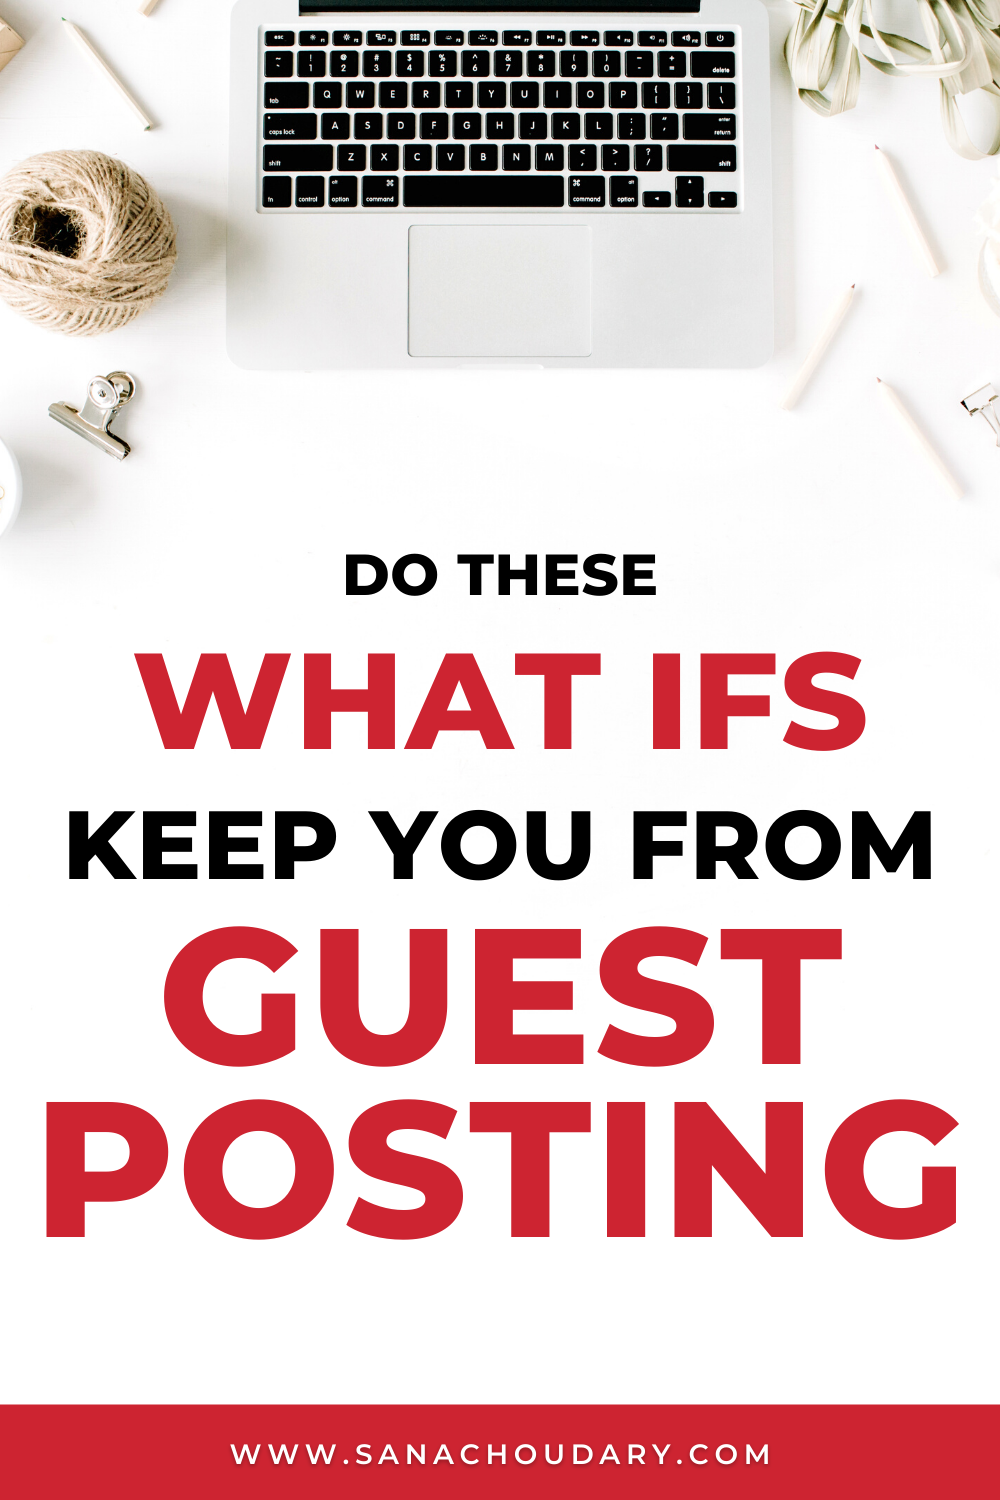 Do These What Ifs Keep You from Guest Posting and Building Your Email List?